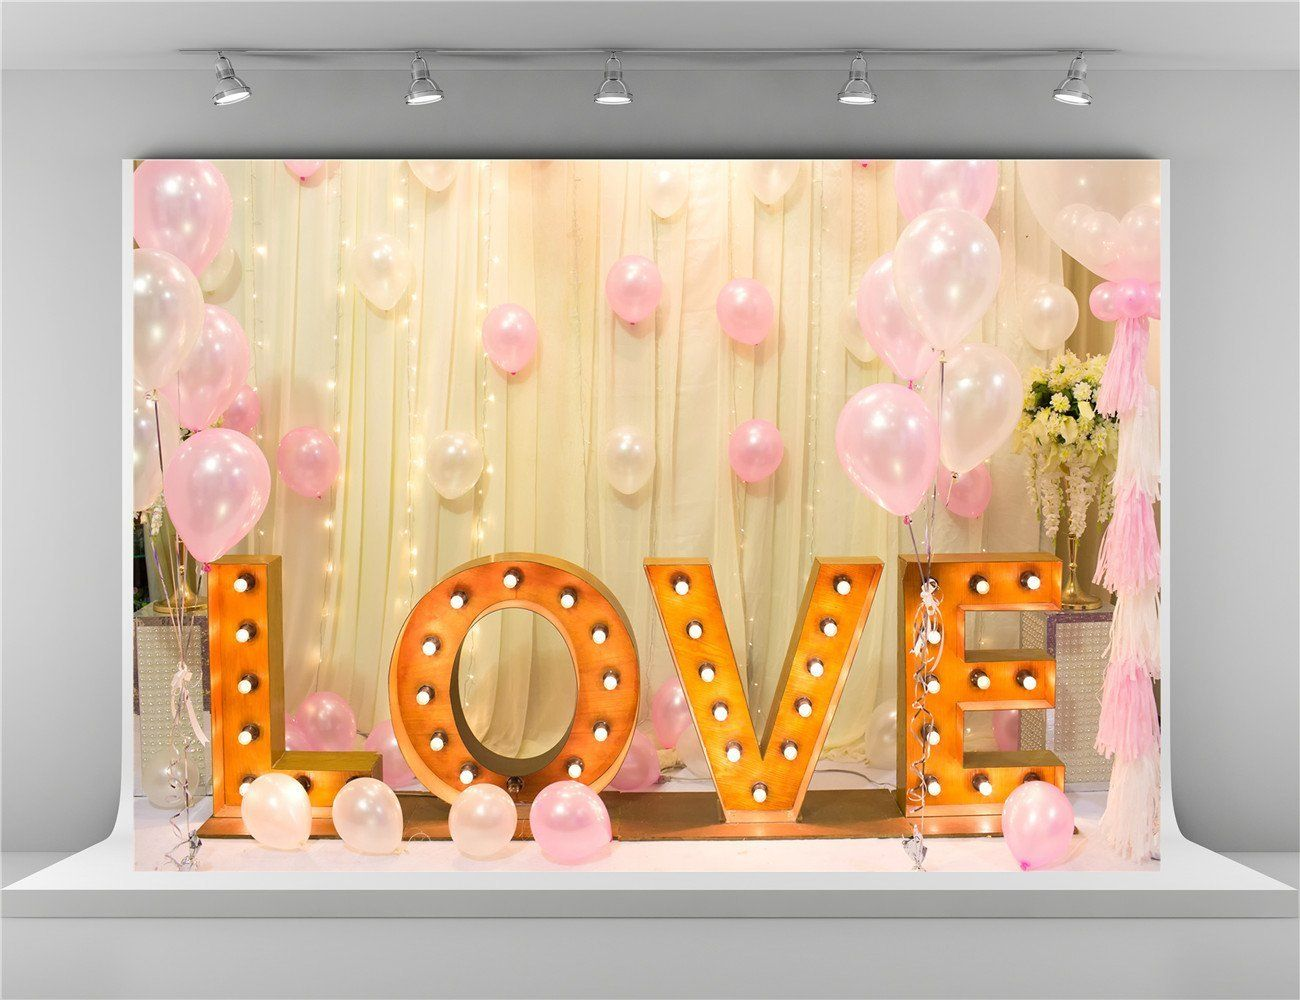 15x10ft Happy Birthday Backdrops for Photography Photo Background Props DSFU027